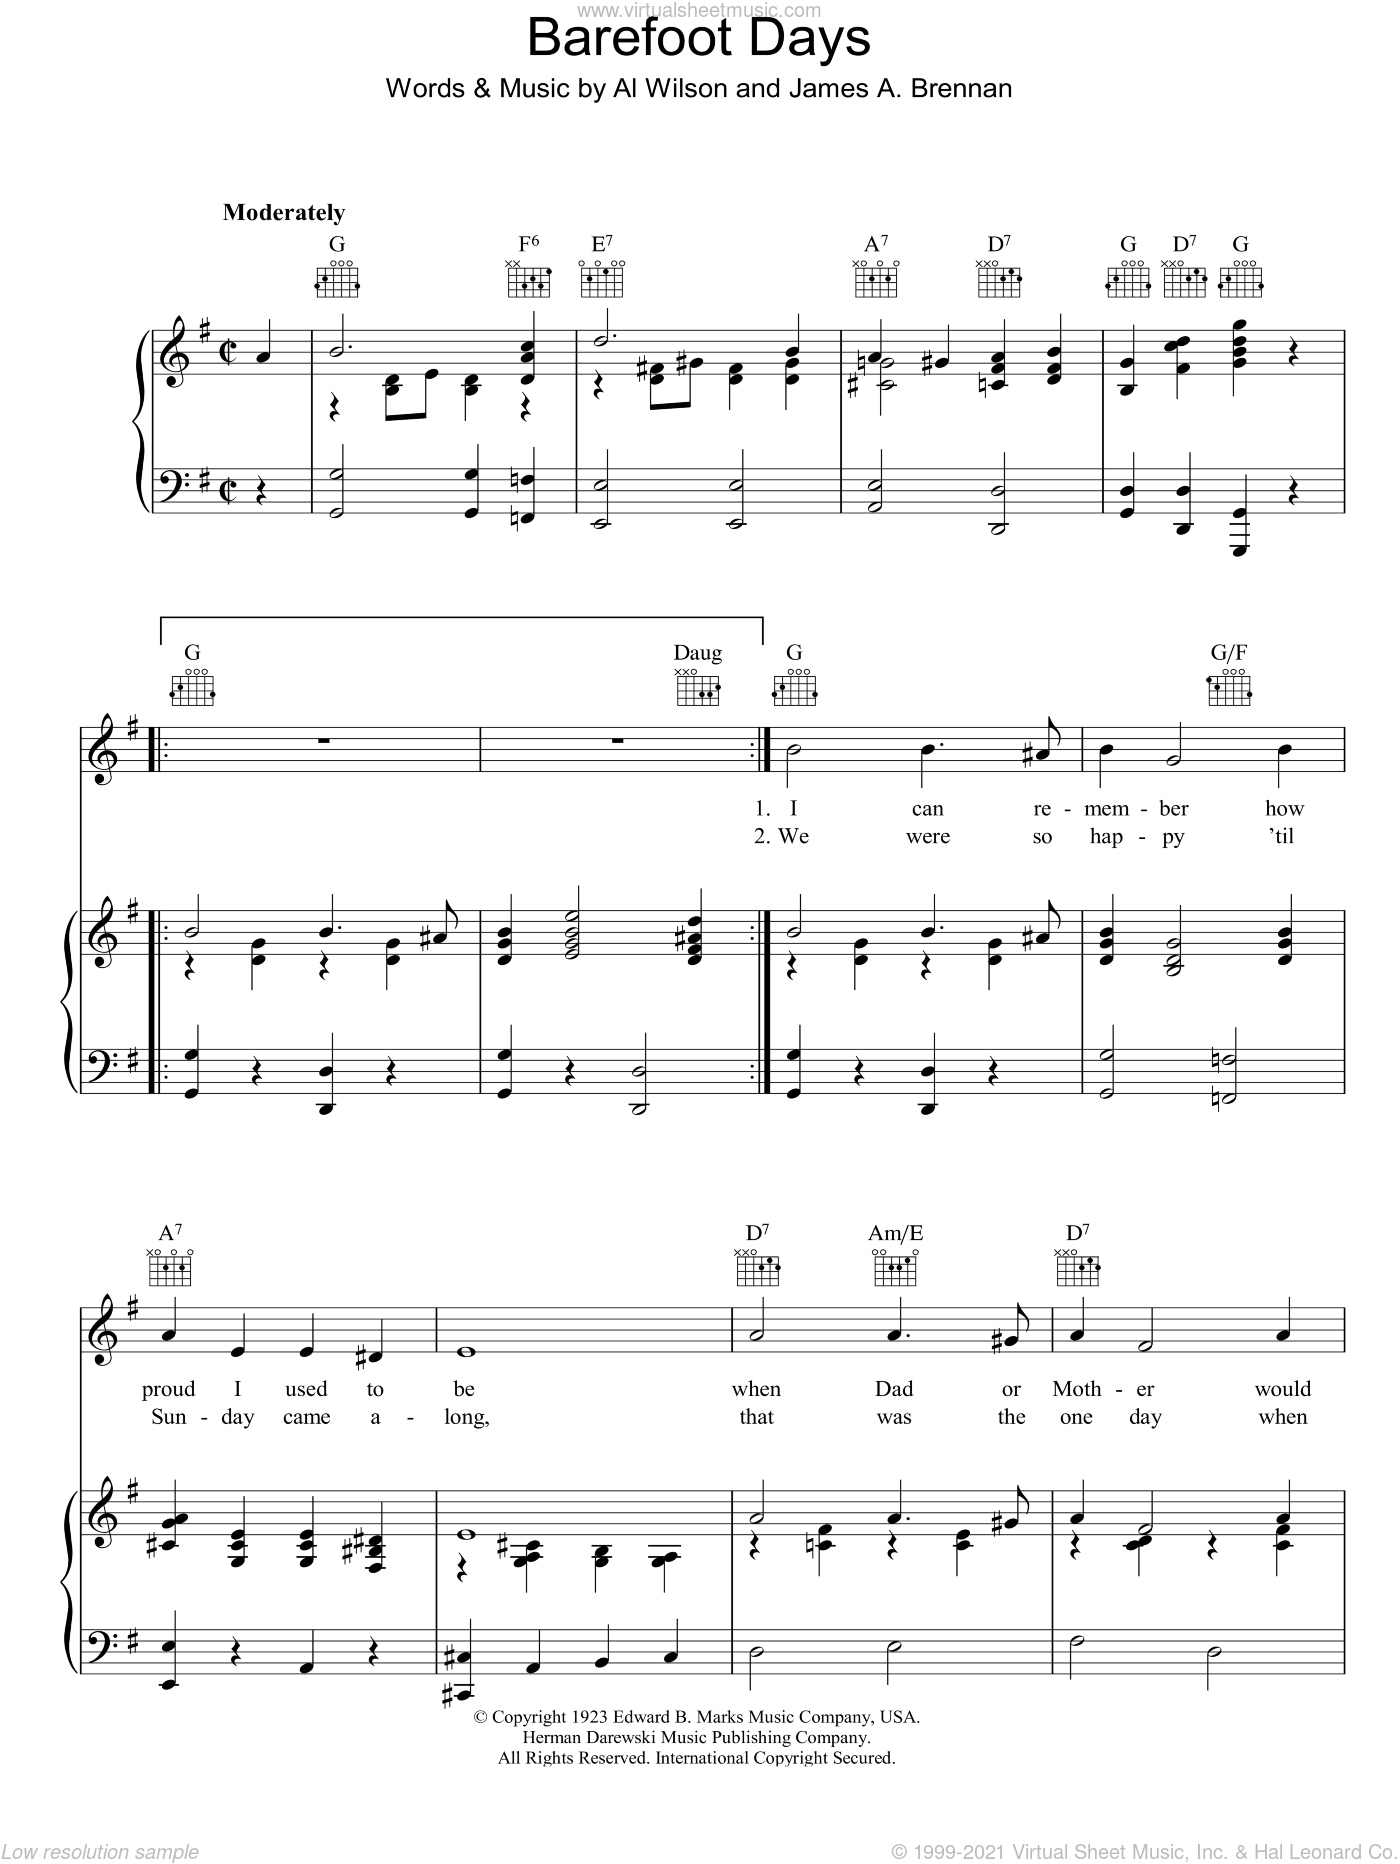 Barefoot Days sheet music for voice, piano or guitar by James Brennan